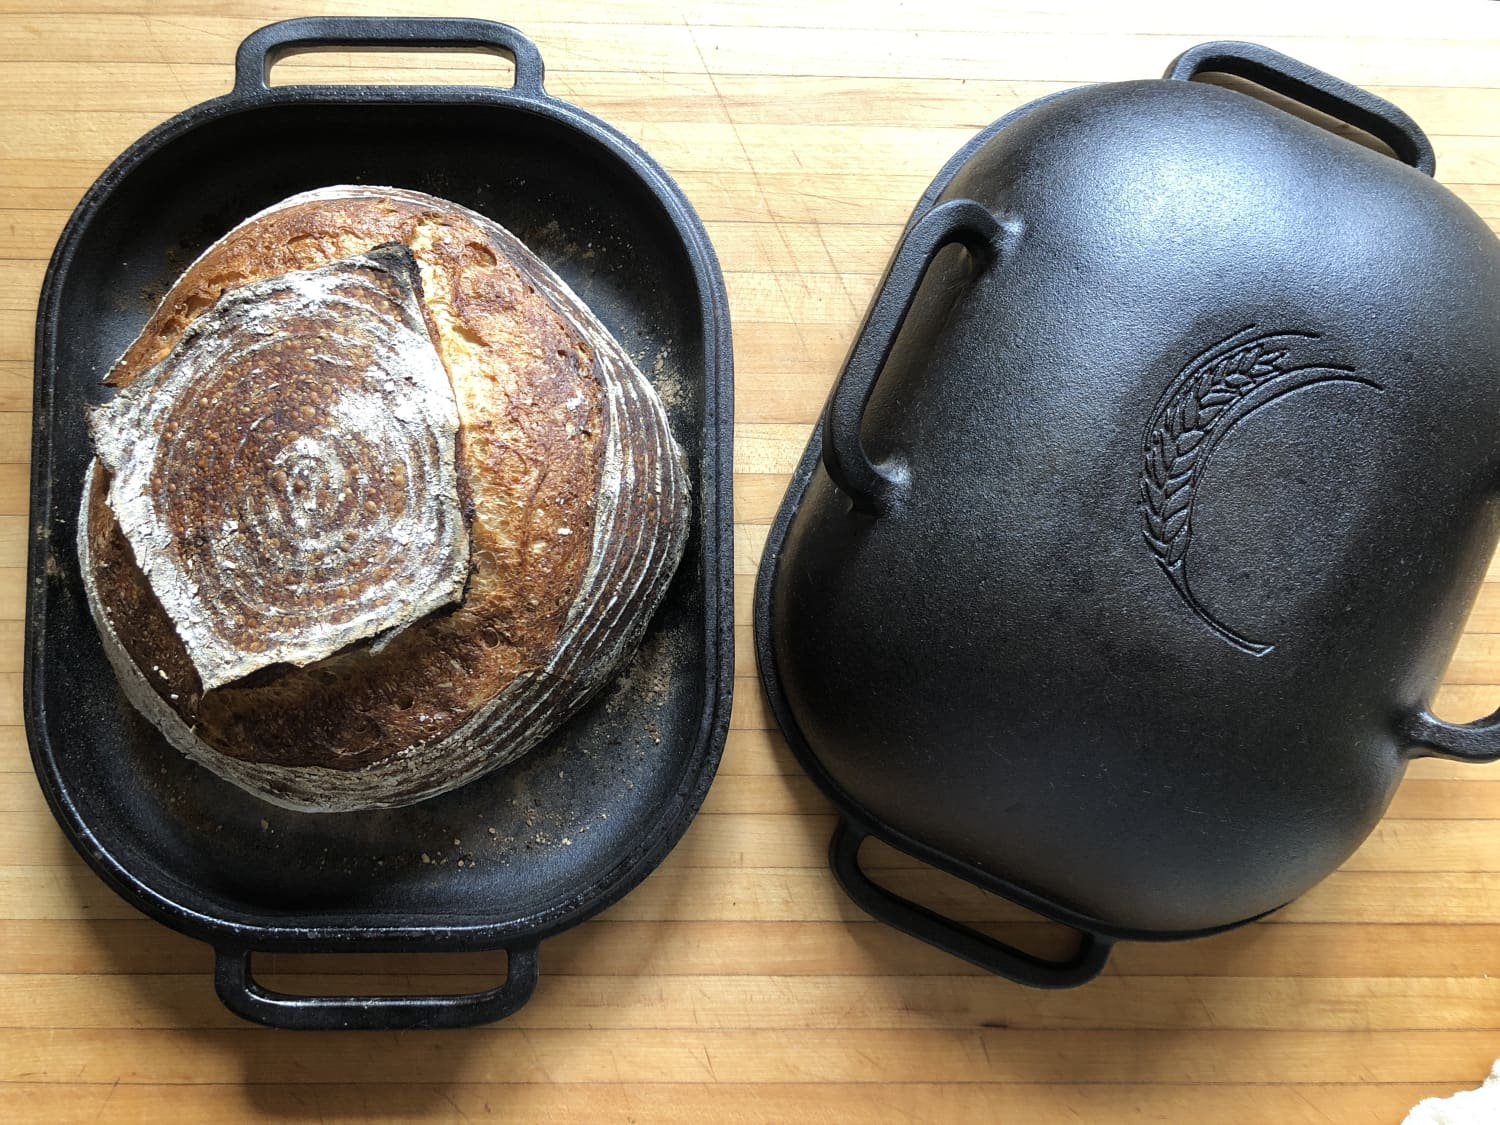 Meet the Seriously Awesome Pan That Bakes Bread Way Better than a Dutch Oven